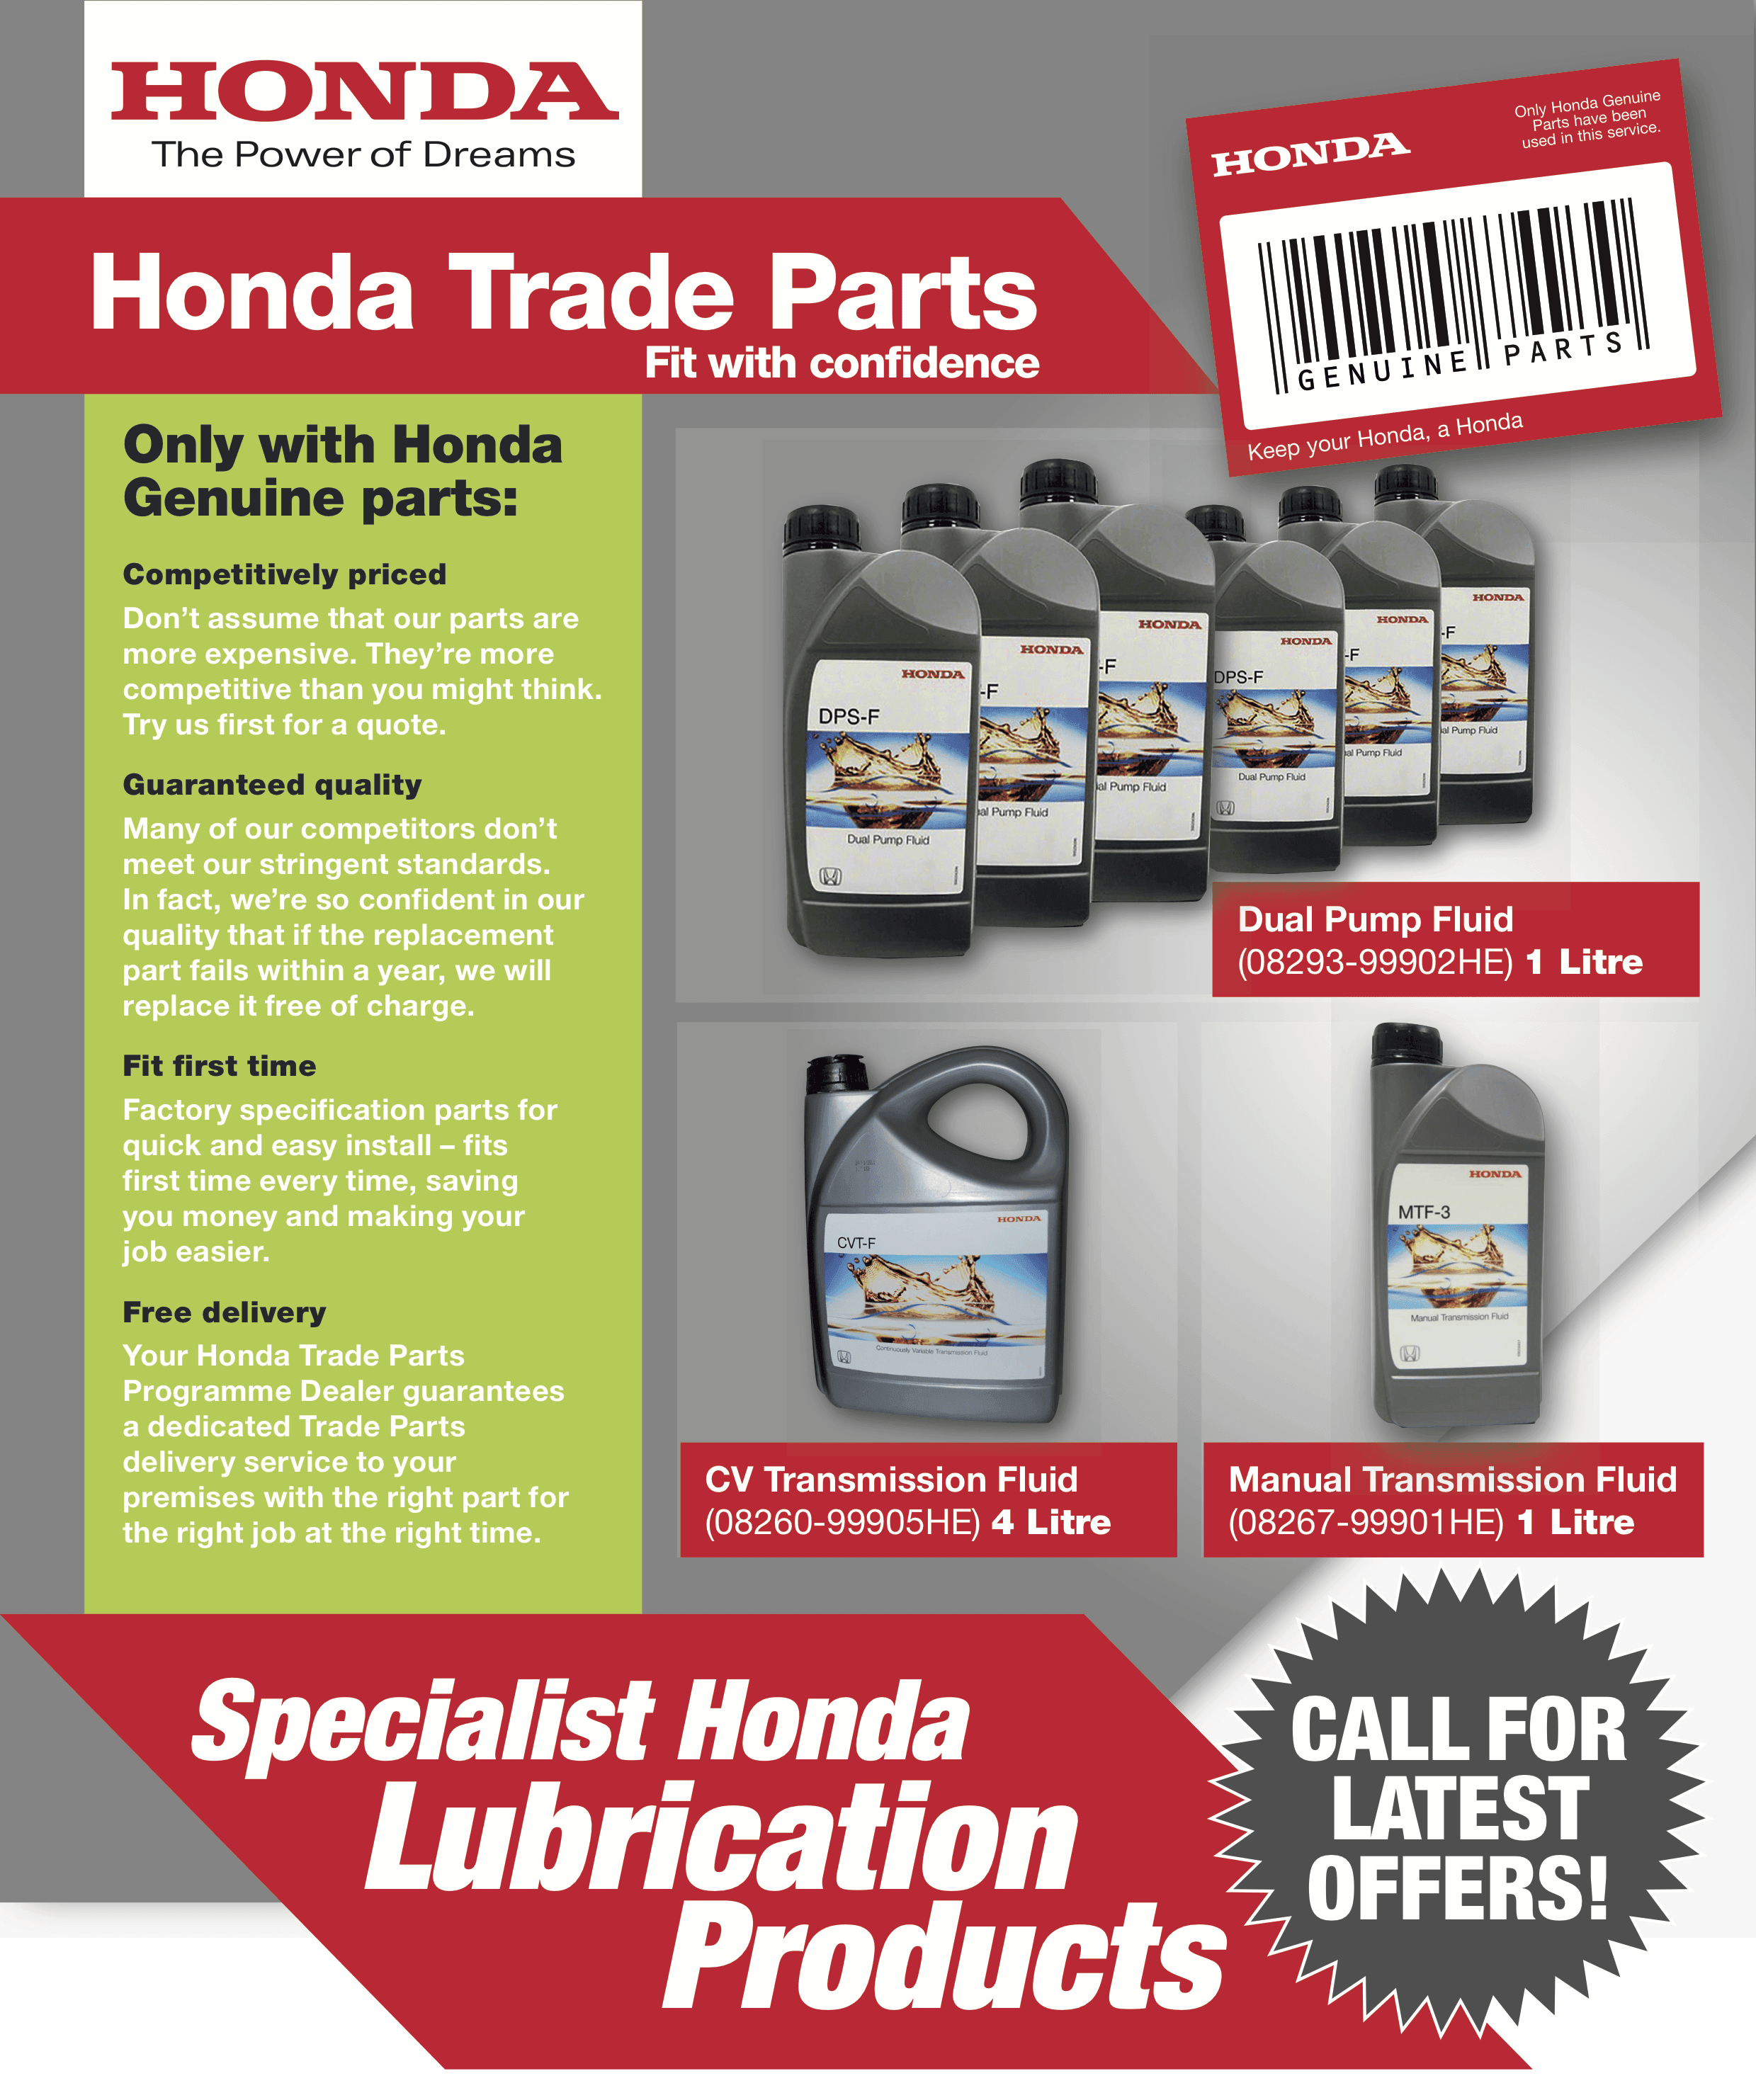 honda_lubricants_offer.png